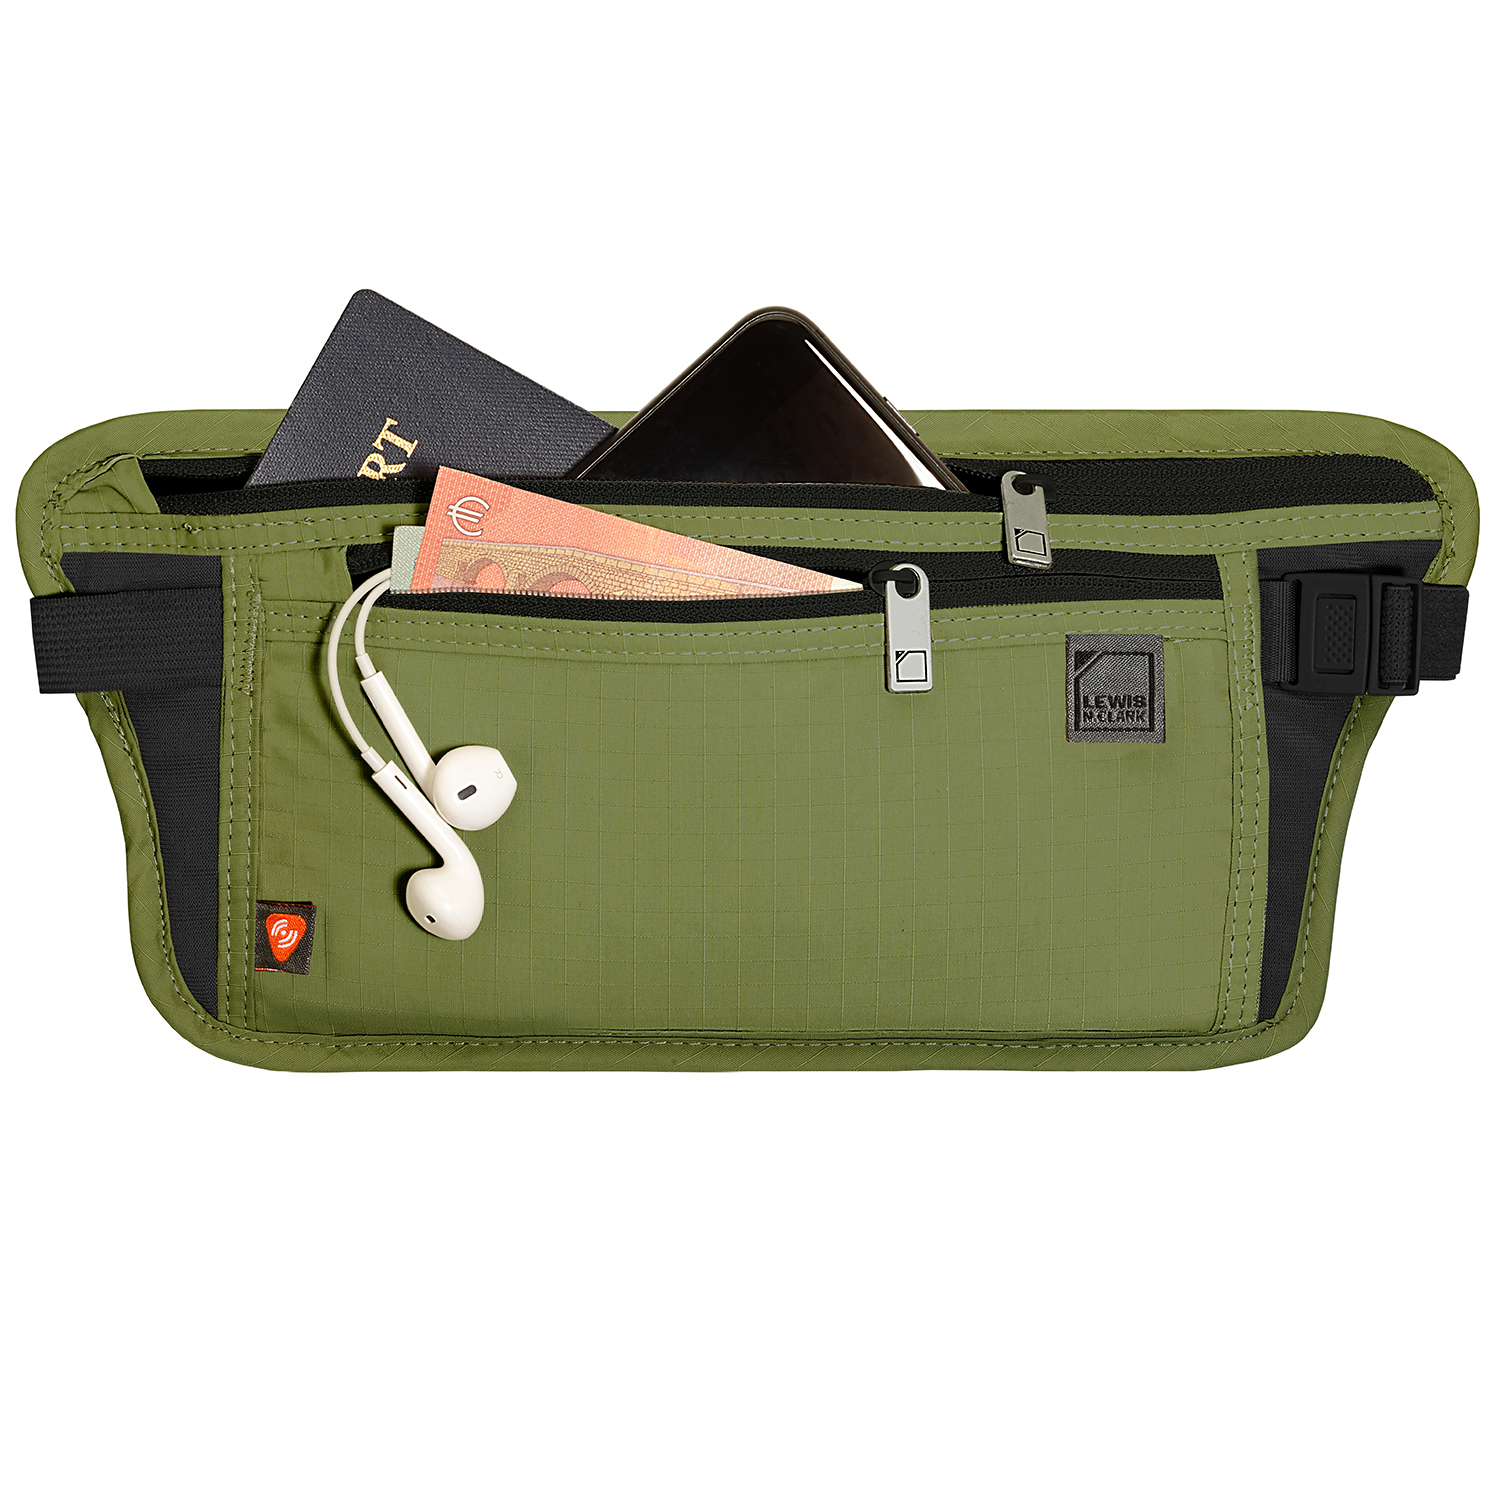 Pea green Travel pack for wearing around waist with zipper pockets holding Euros, headphones and passports Product Photography